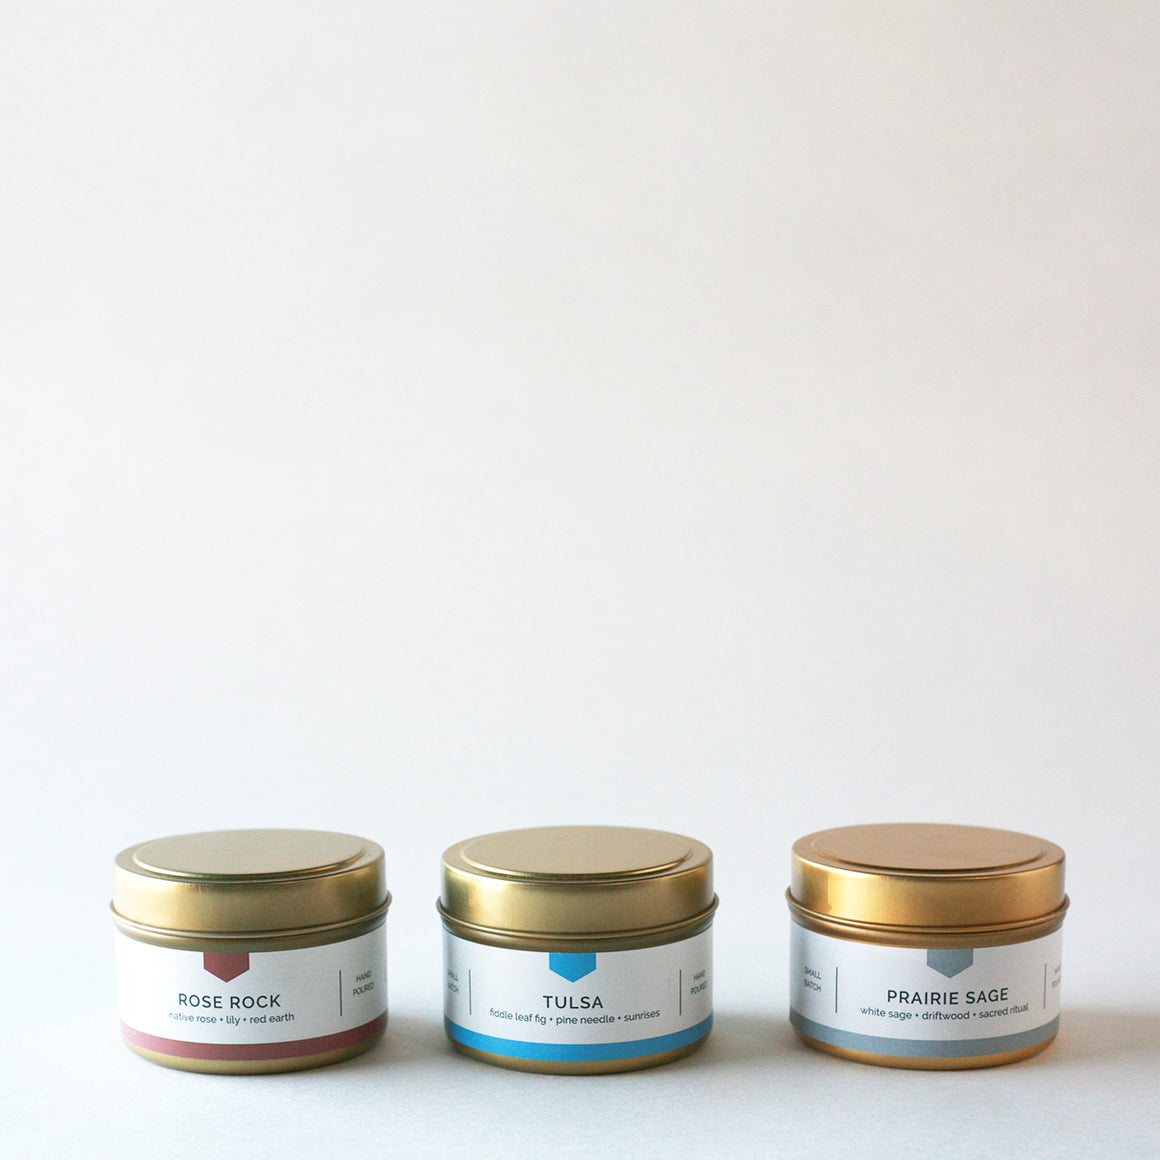 CREATE YOUR OWN - Travel Tin Candle Gift Set ($42 Value)